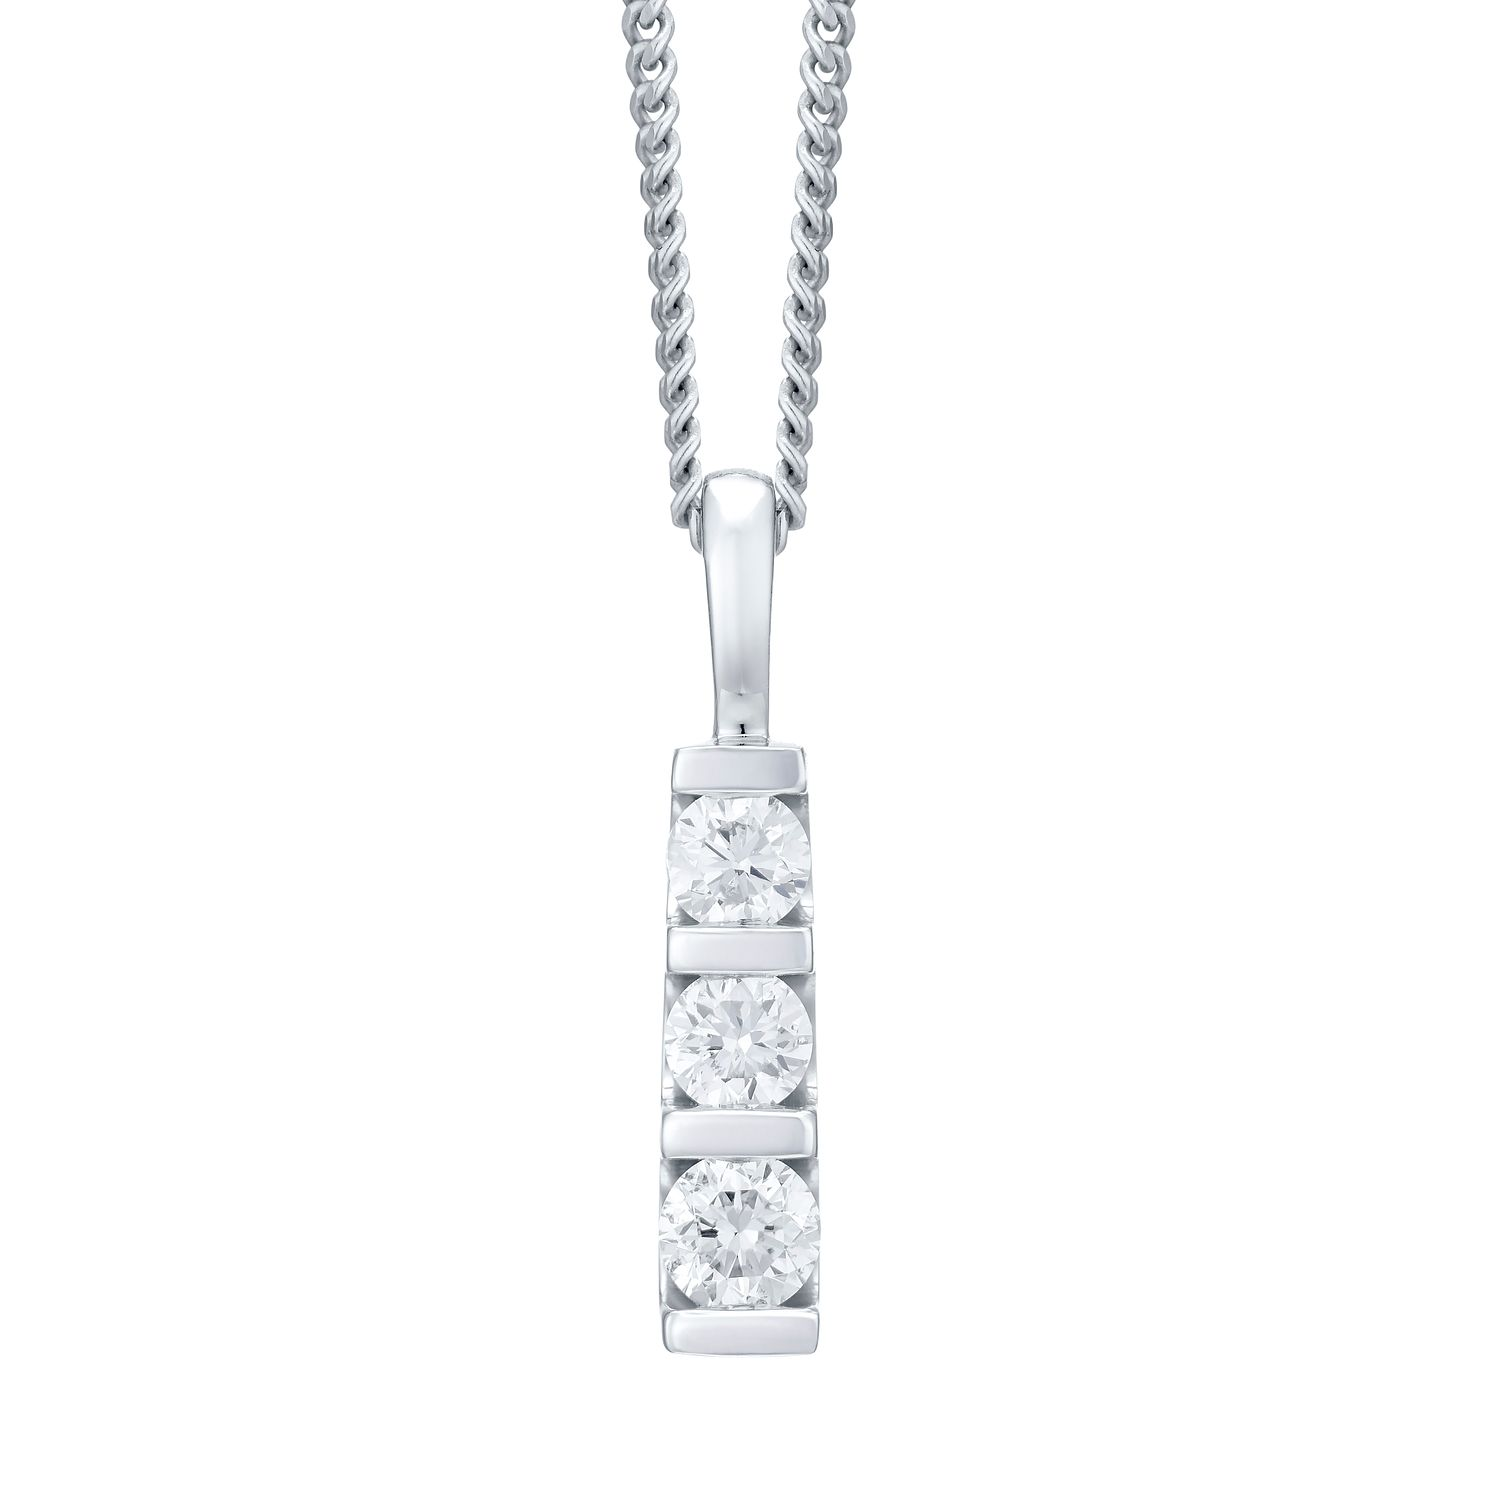 9ct White Gold Trilogy Diamond Pendant Necklace - Product number 4720016